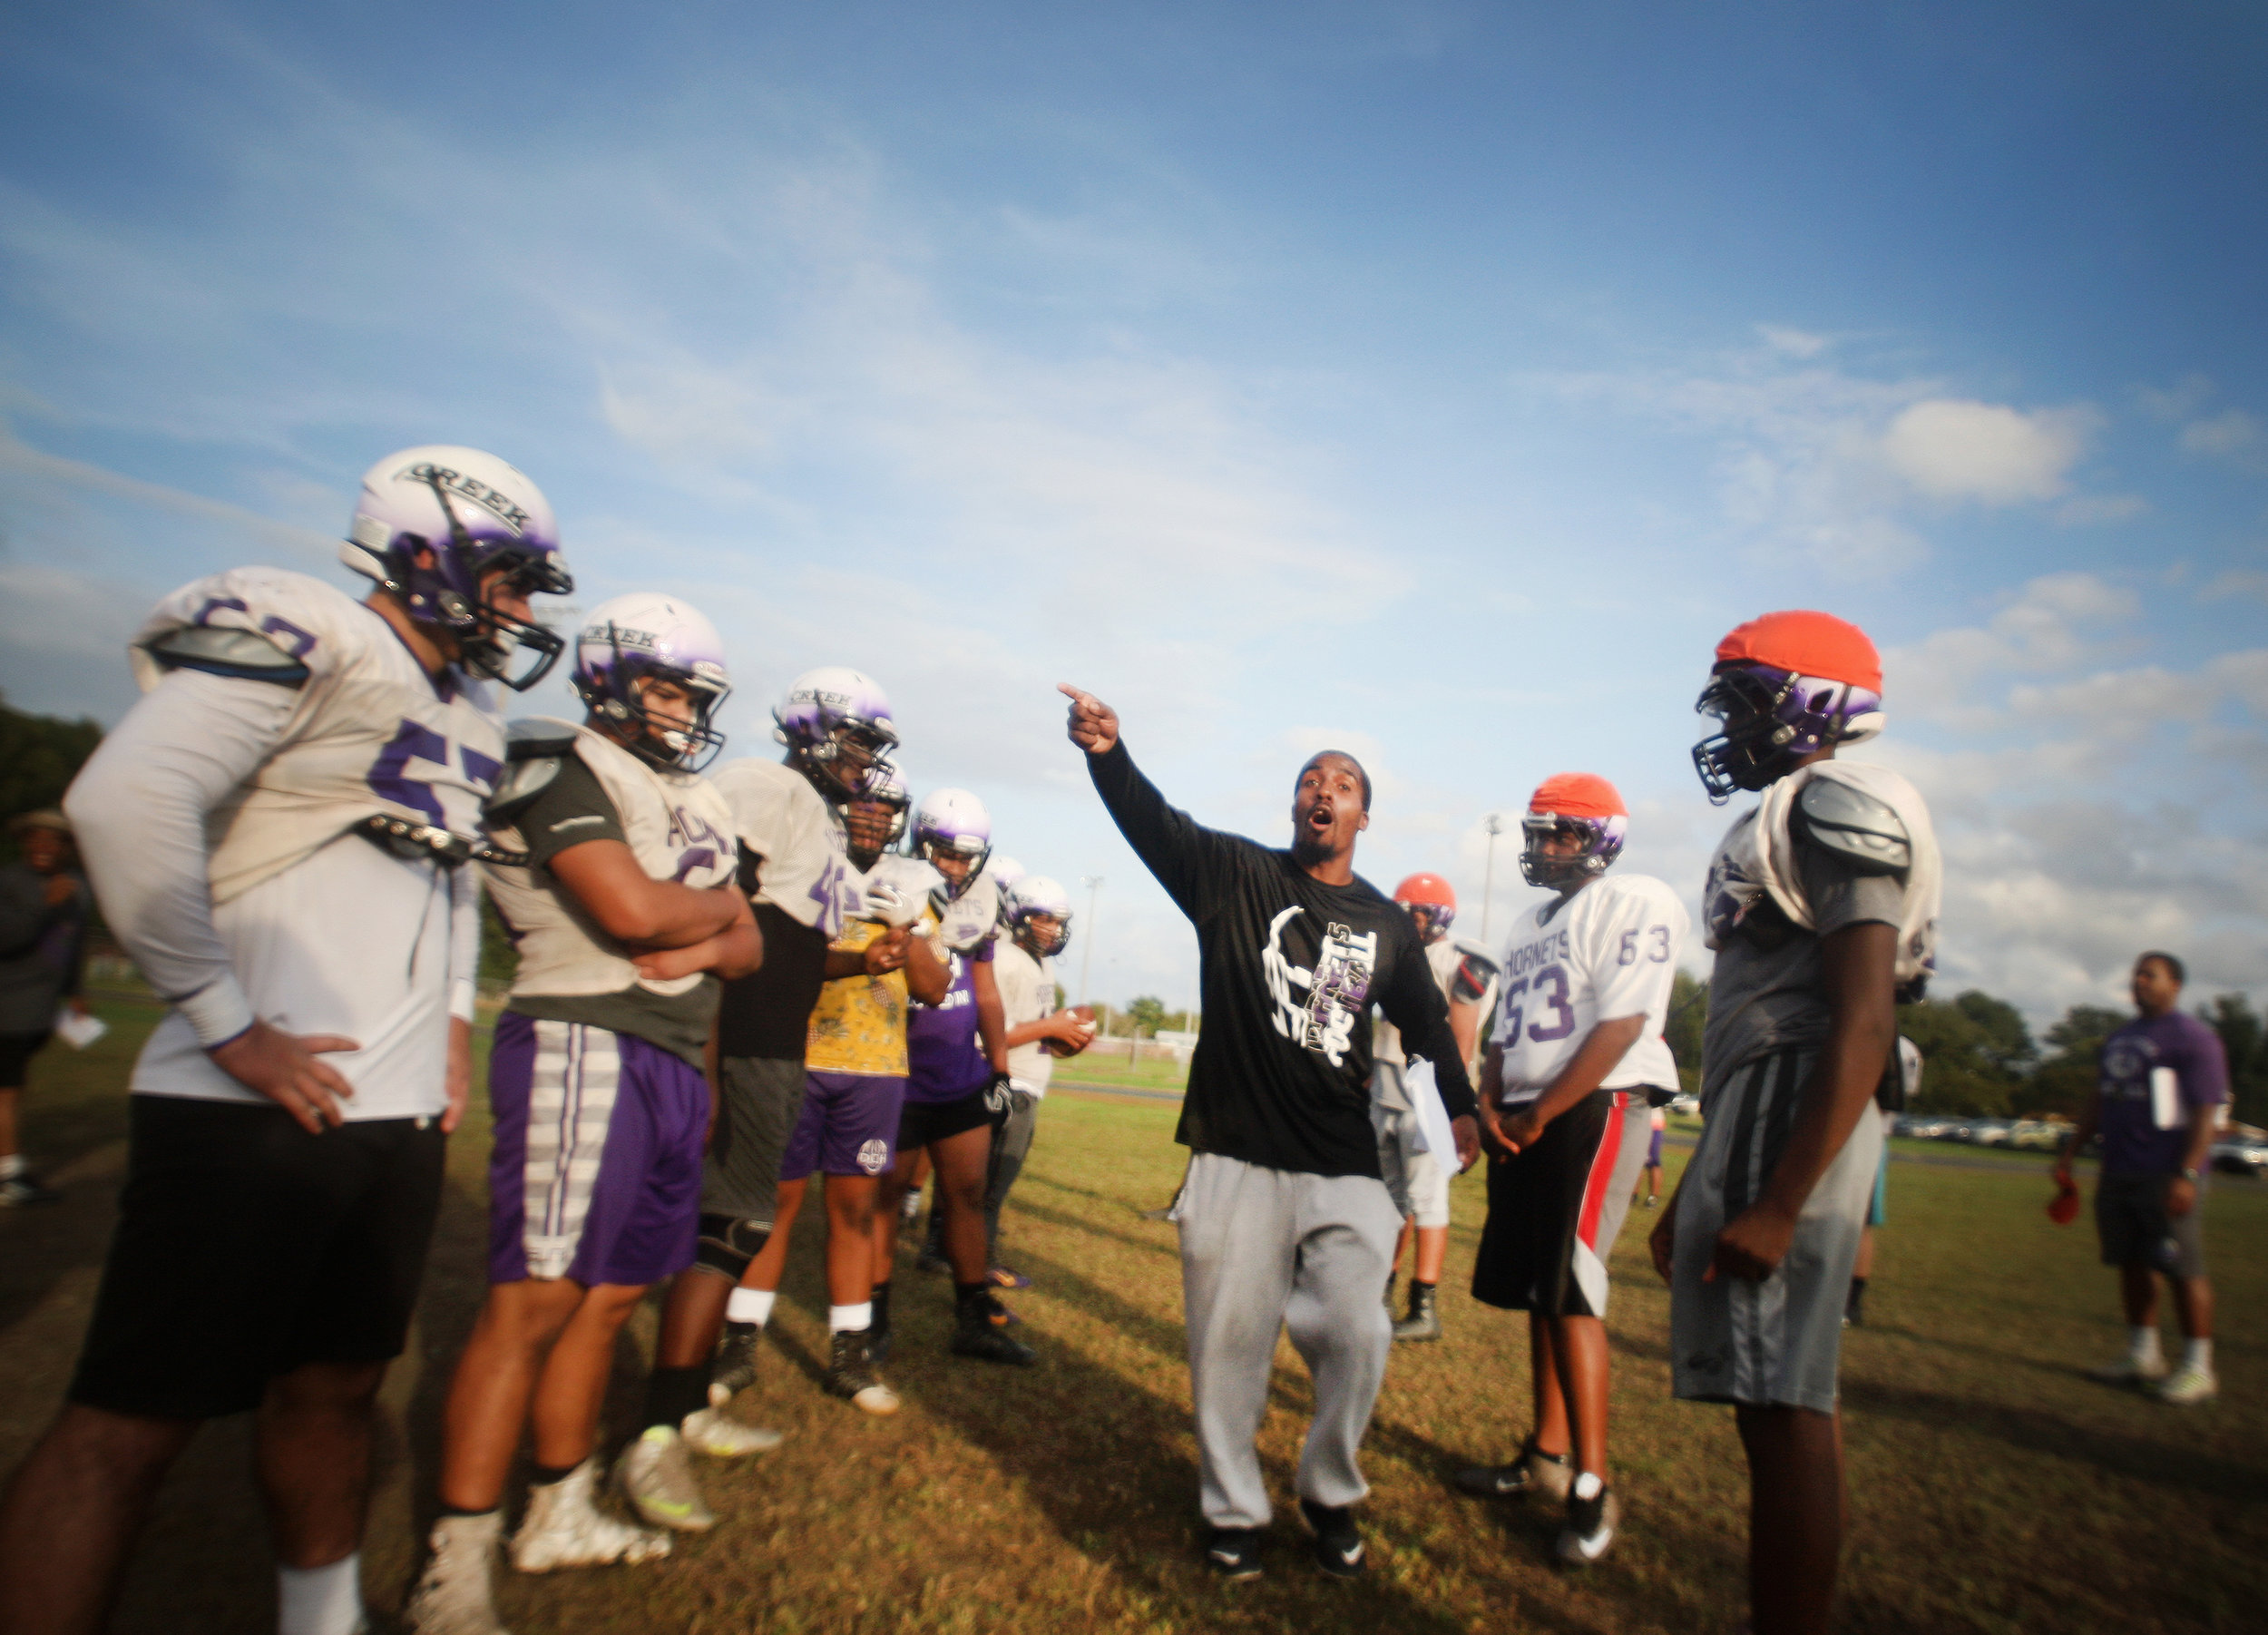 Deep Creek head coach Andre Twine talks with his team during practice, Monday, Oct. 9, 2017 at Deep Creek High School in Chesapeake. After nearly a decade in the basement, Twine has quickly turned things around for the Hornets program.